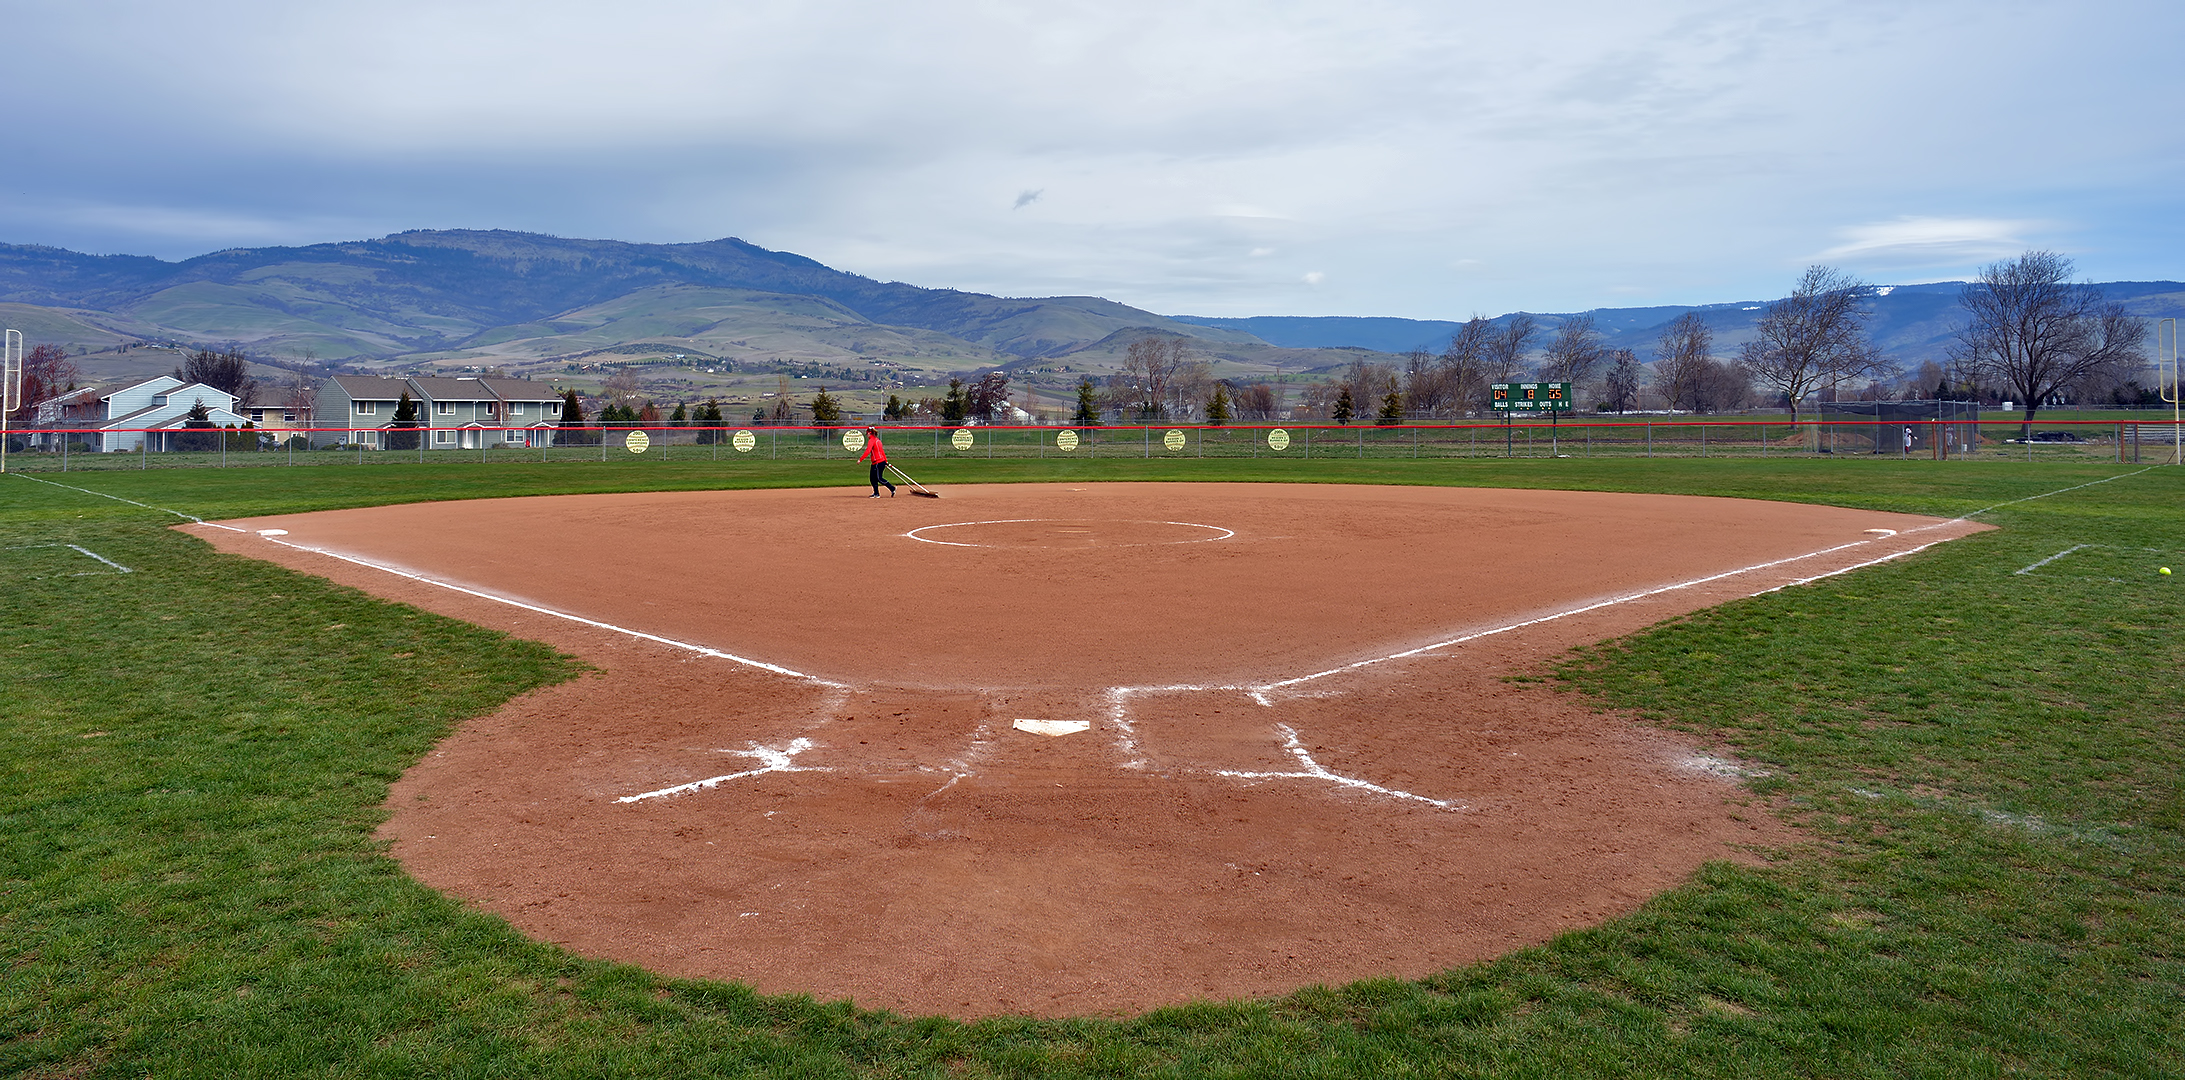 Cool Softball Field Backgrounds Images Pictures   Becuo 2185x1080